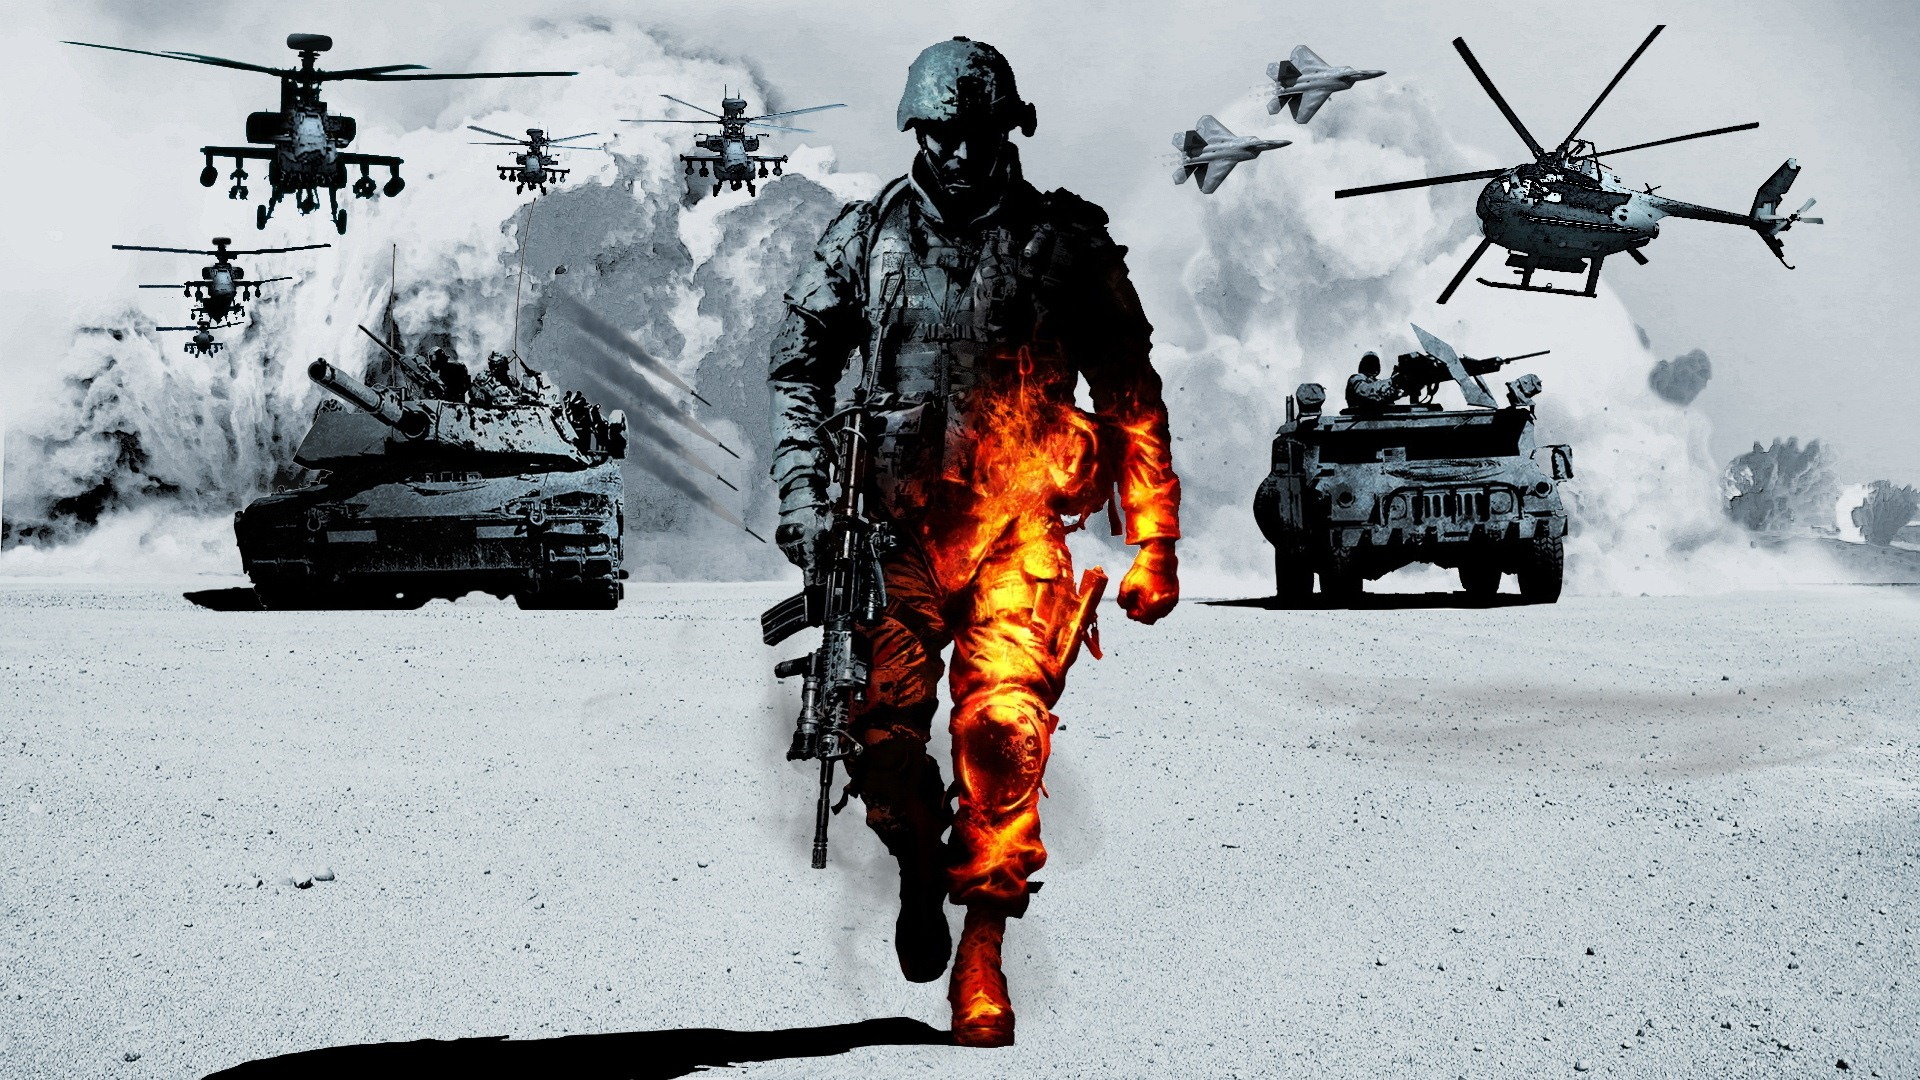 Battlefield Wallpaper 1920x1080 - WallpaperSafari